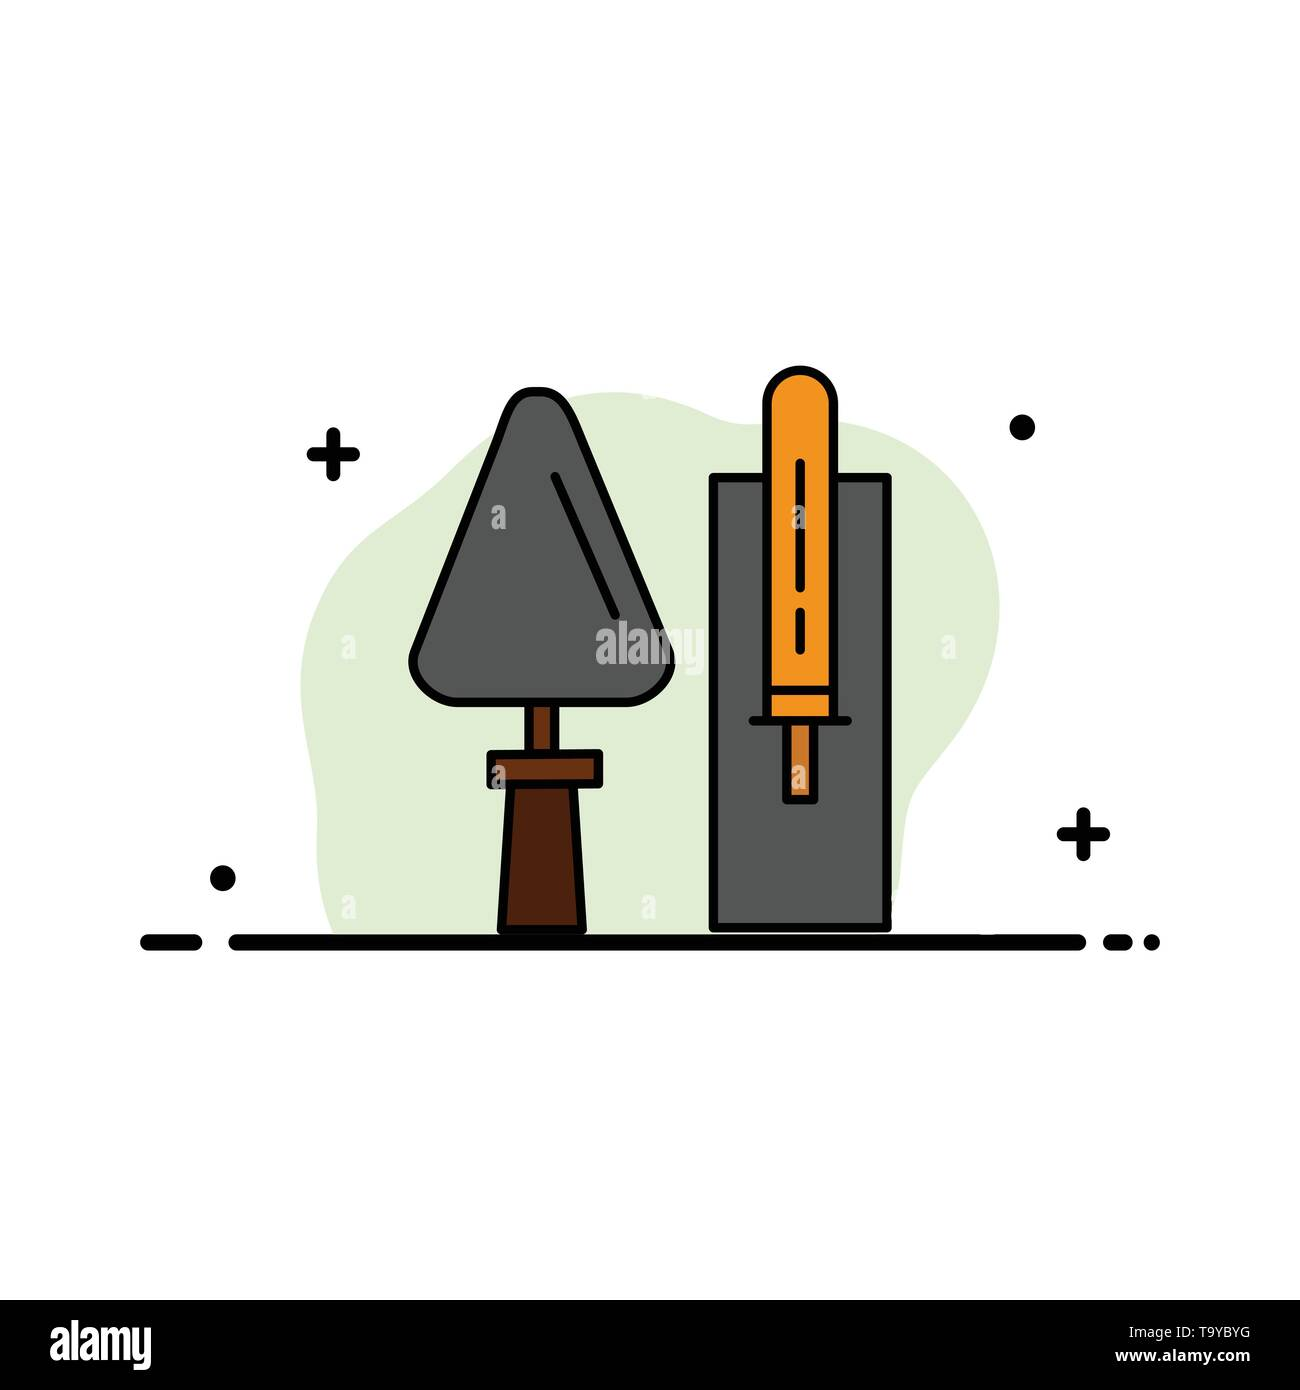 Trowel, Brickwork, Construction, Masonry, Tool  Business Flat Line Filled Icon Vector Banner Template - Stock Image